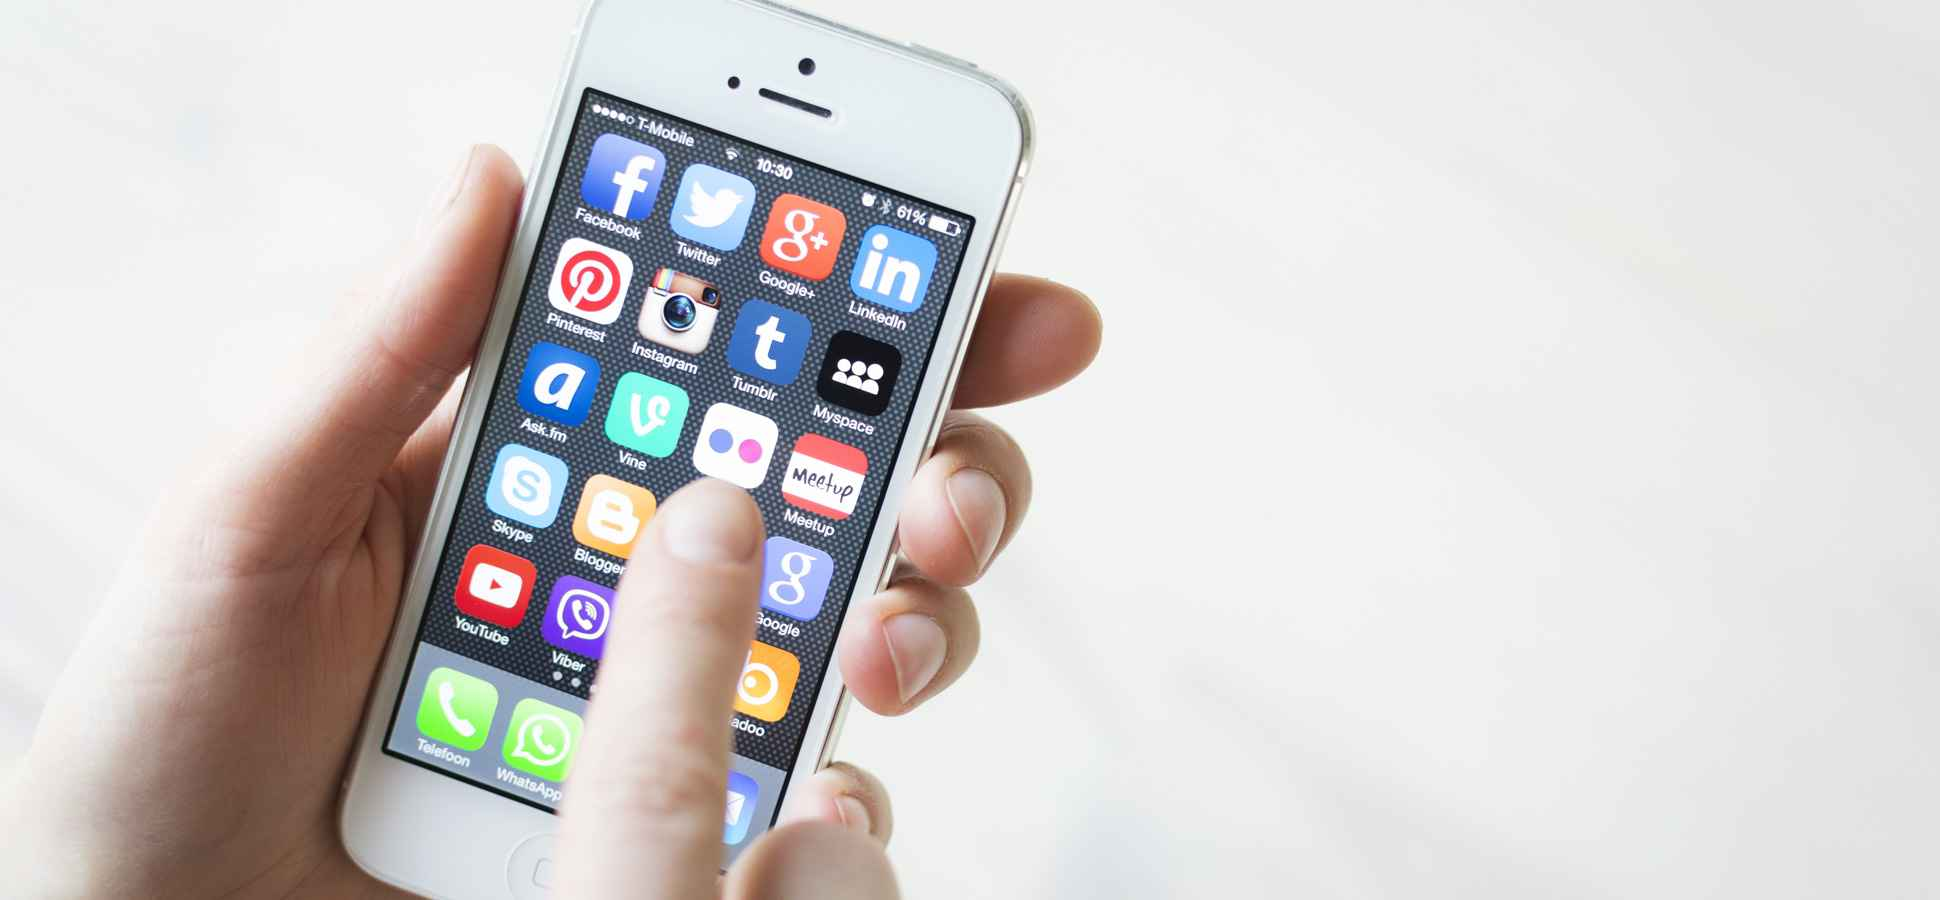 Apple Says These Are the Best iPhone, iPad Apps of 2014